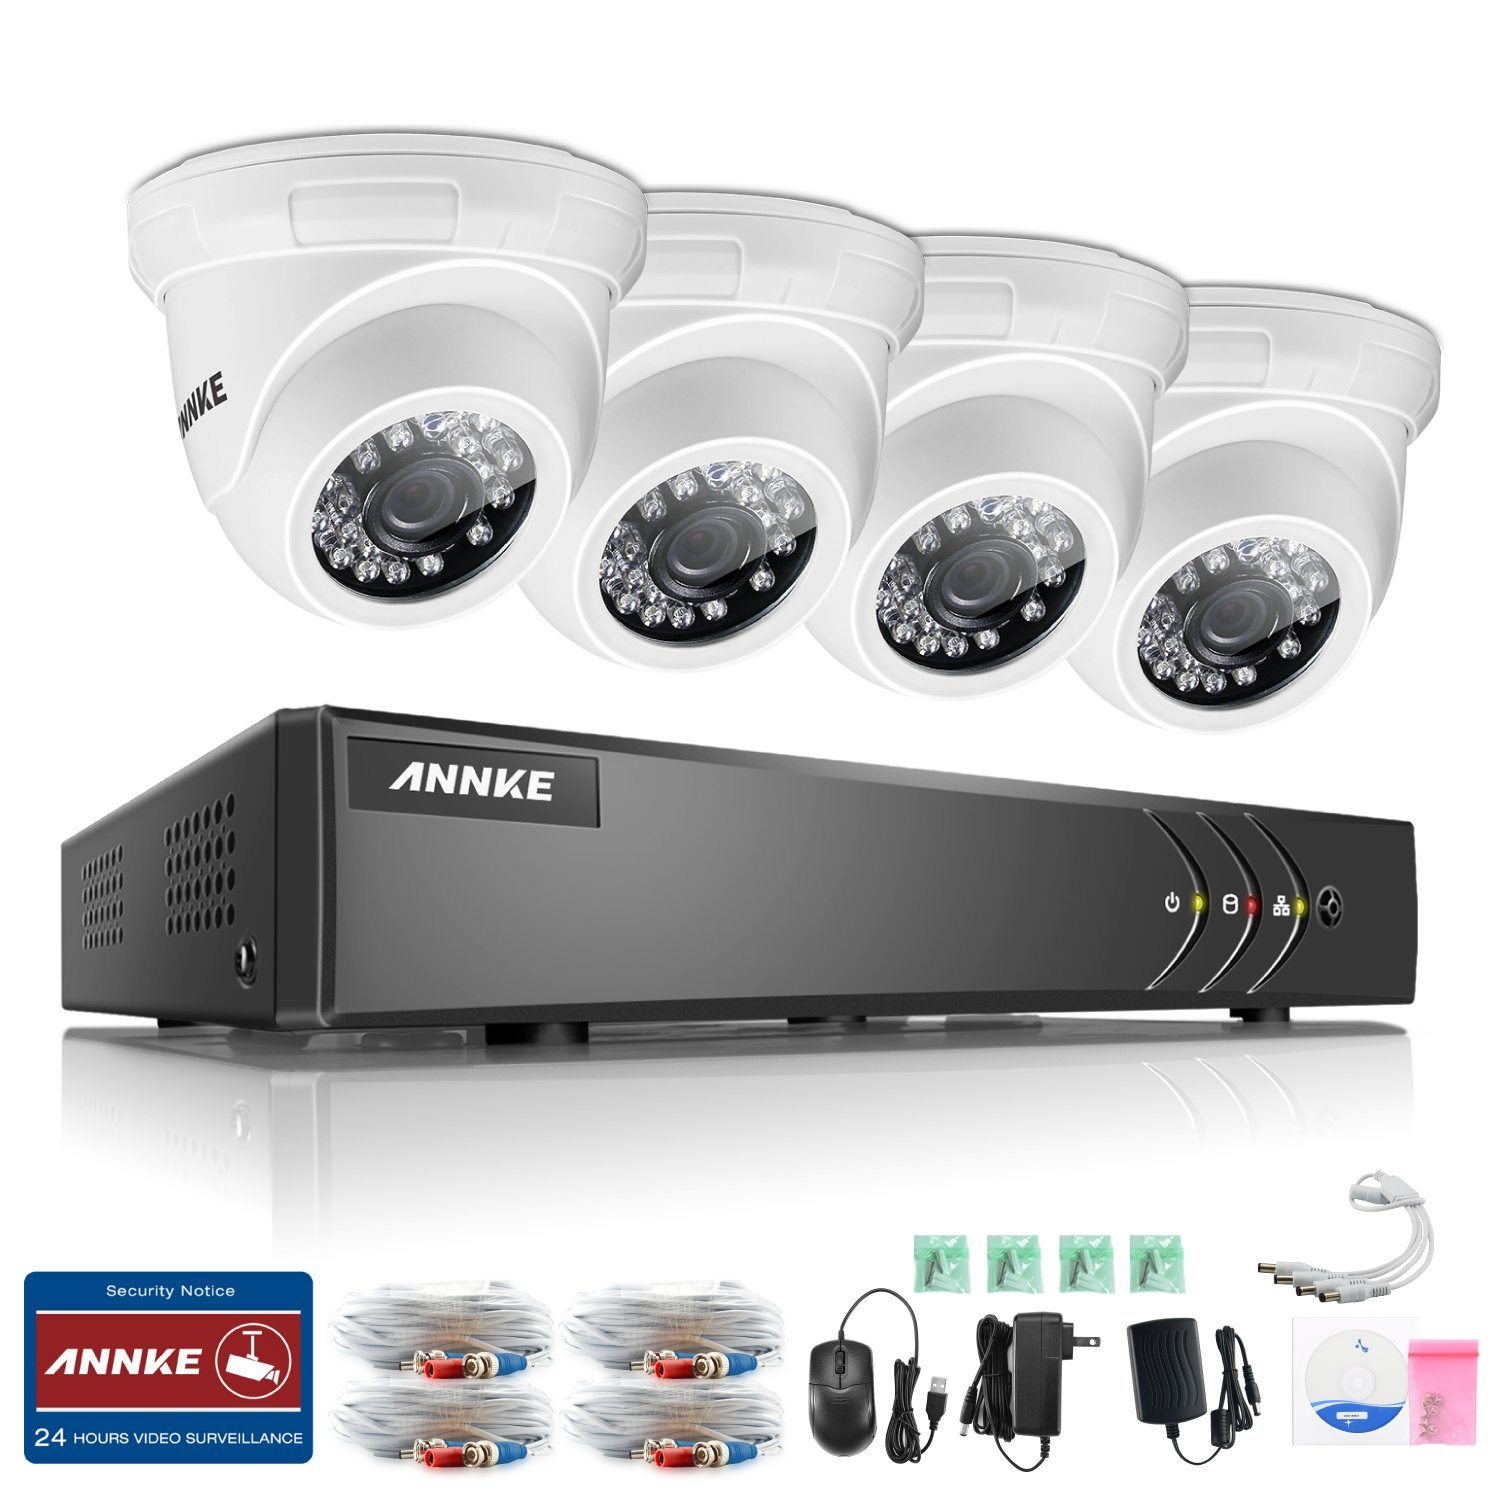 ANNKE H.264+ 4 Channel 1080P Lite HD DVR Recorder Security System with 2x1500TVL Dome Security Camera, IP66 Weatherproof,Smart Playback, Email Alarm with Image, P2P, Plug and Play(No Hard Drive)